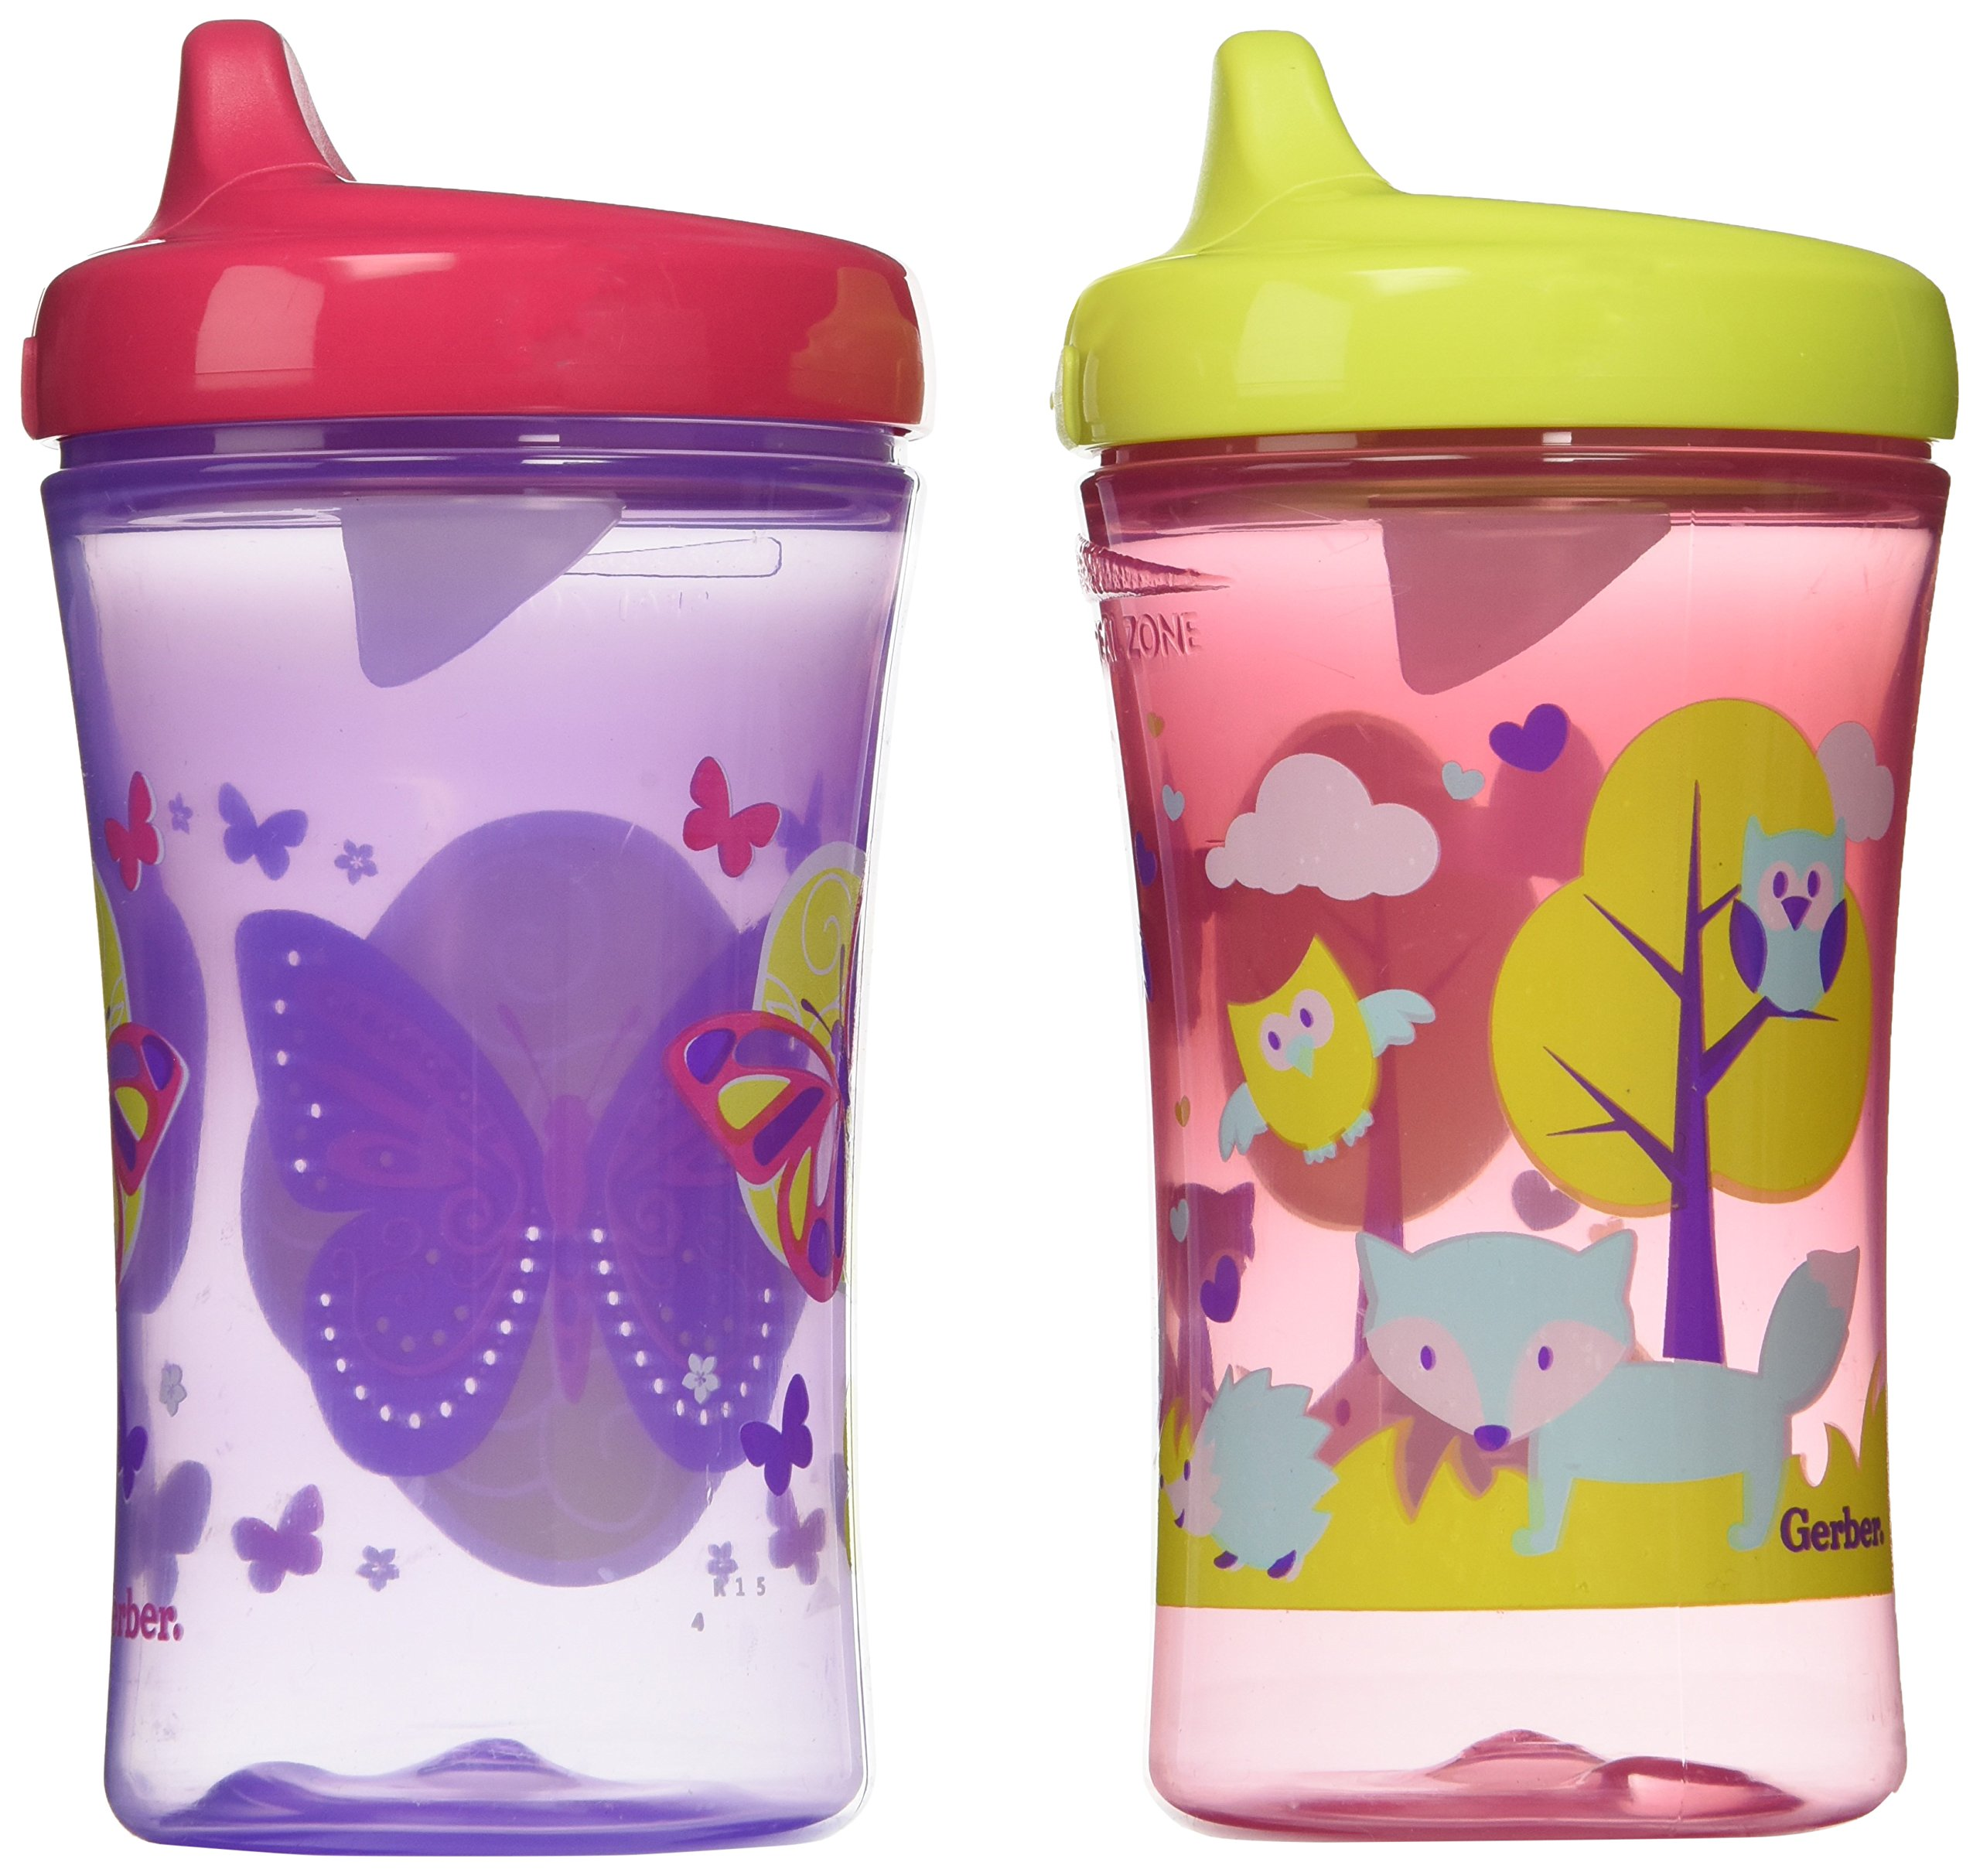 Gerber Graduates Advance Developmental Hard Spout Sippy Cup in Assorted Colors-2 Pack, 10-Ounce (Theme May Vary)